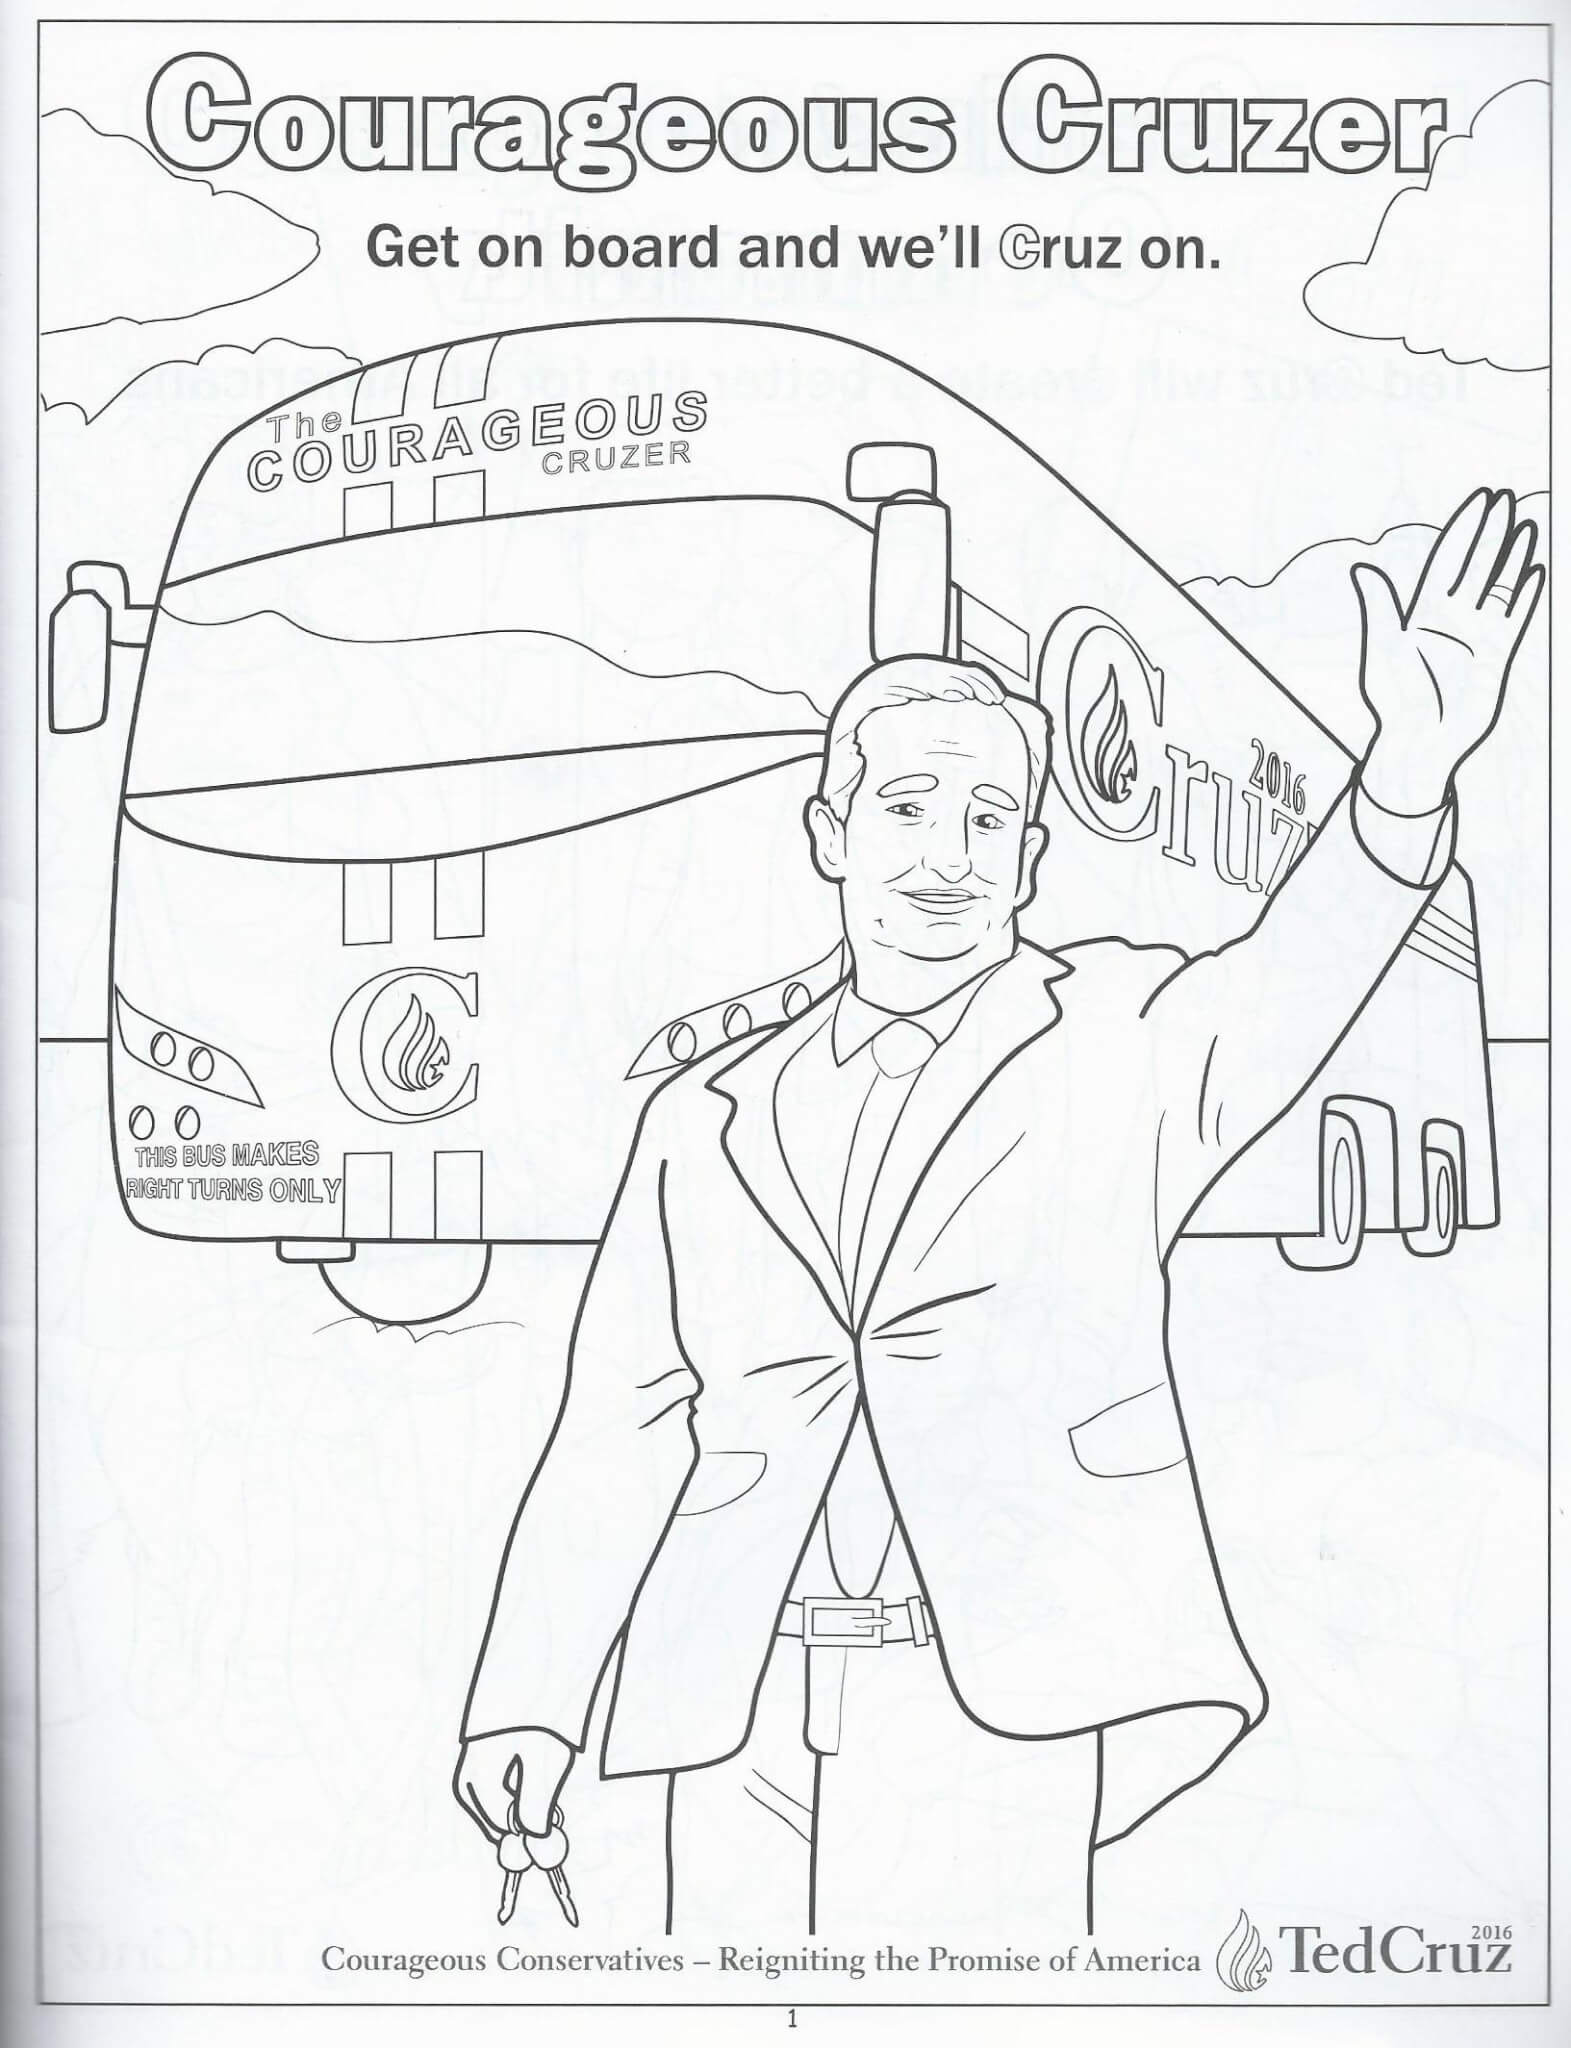 We Review Ted Cruzs Ridiculous Childrens Coloring Book